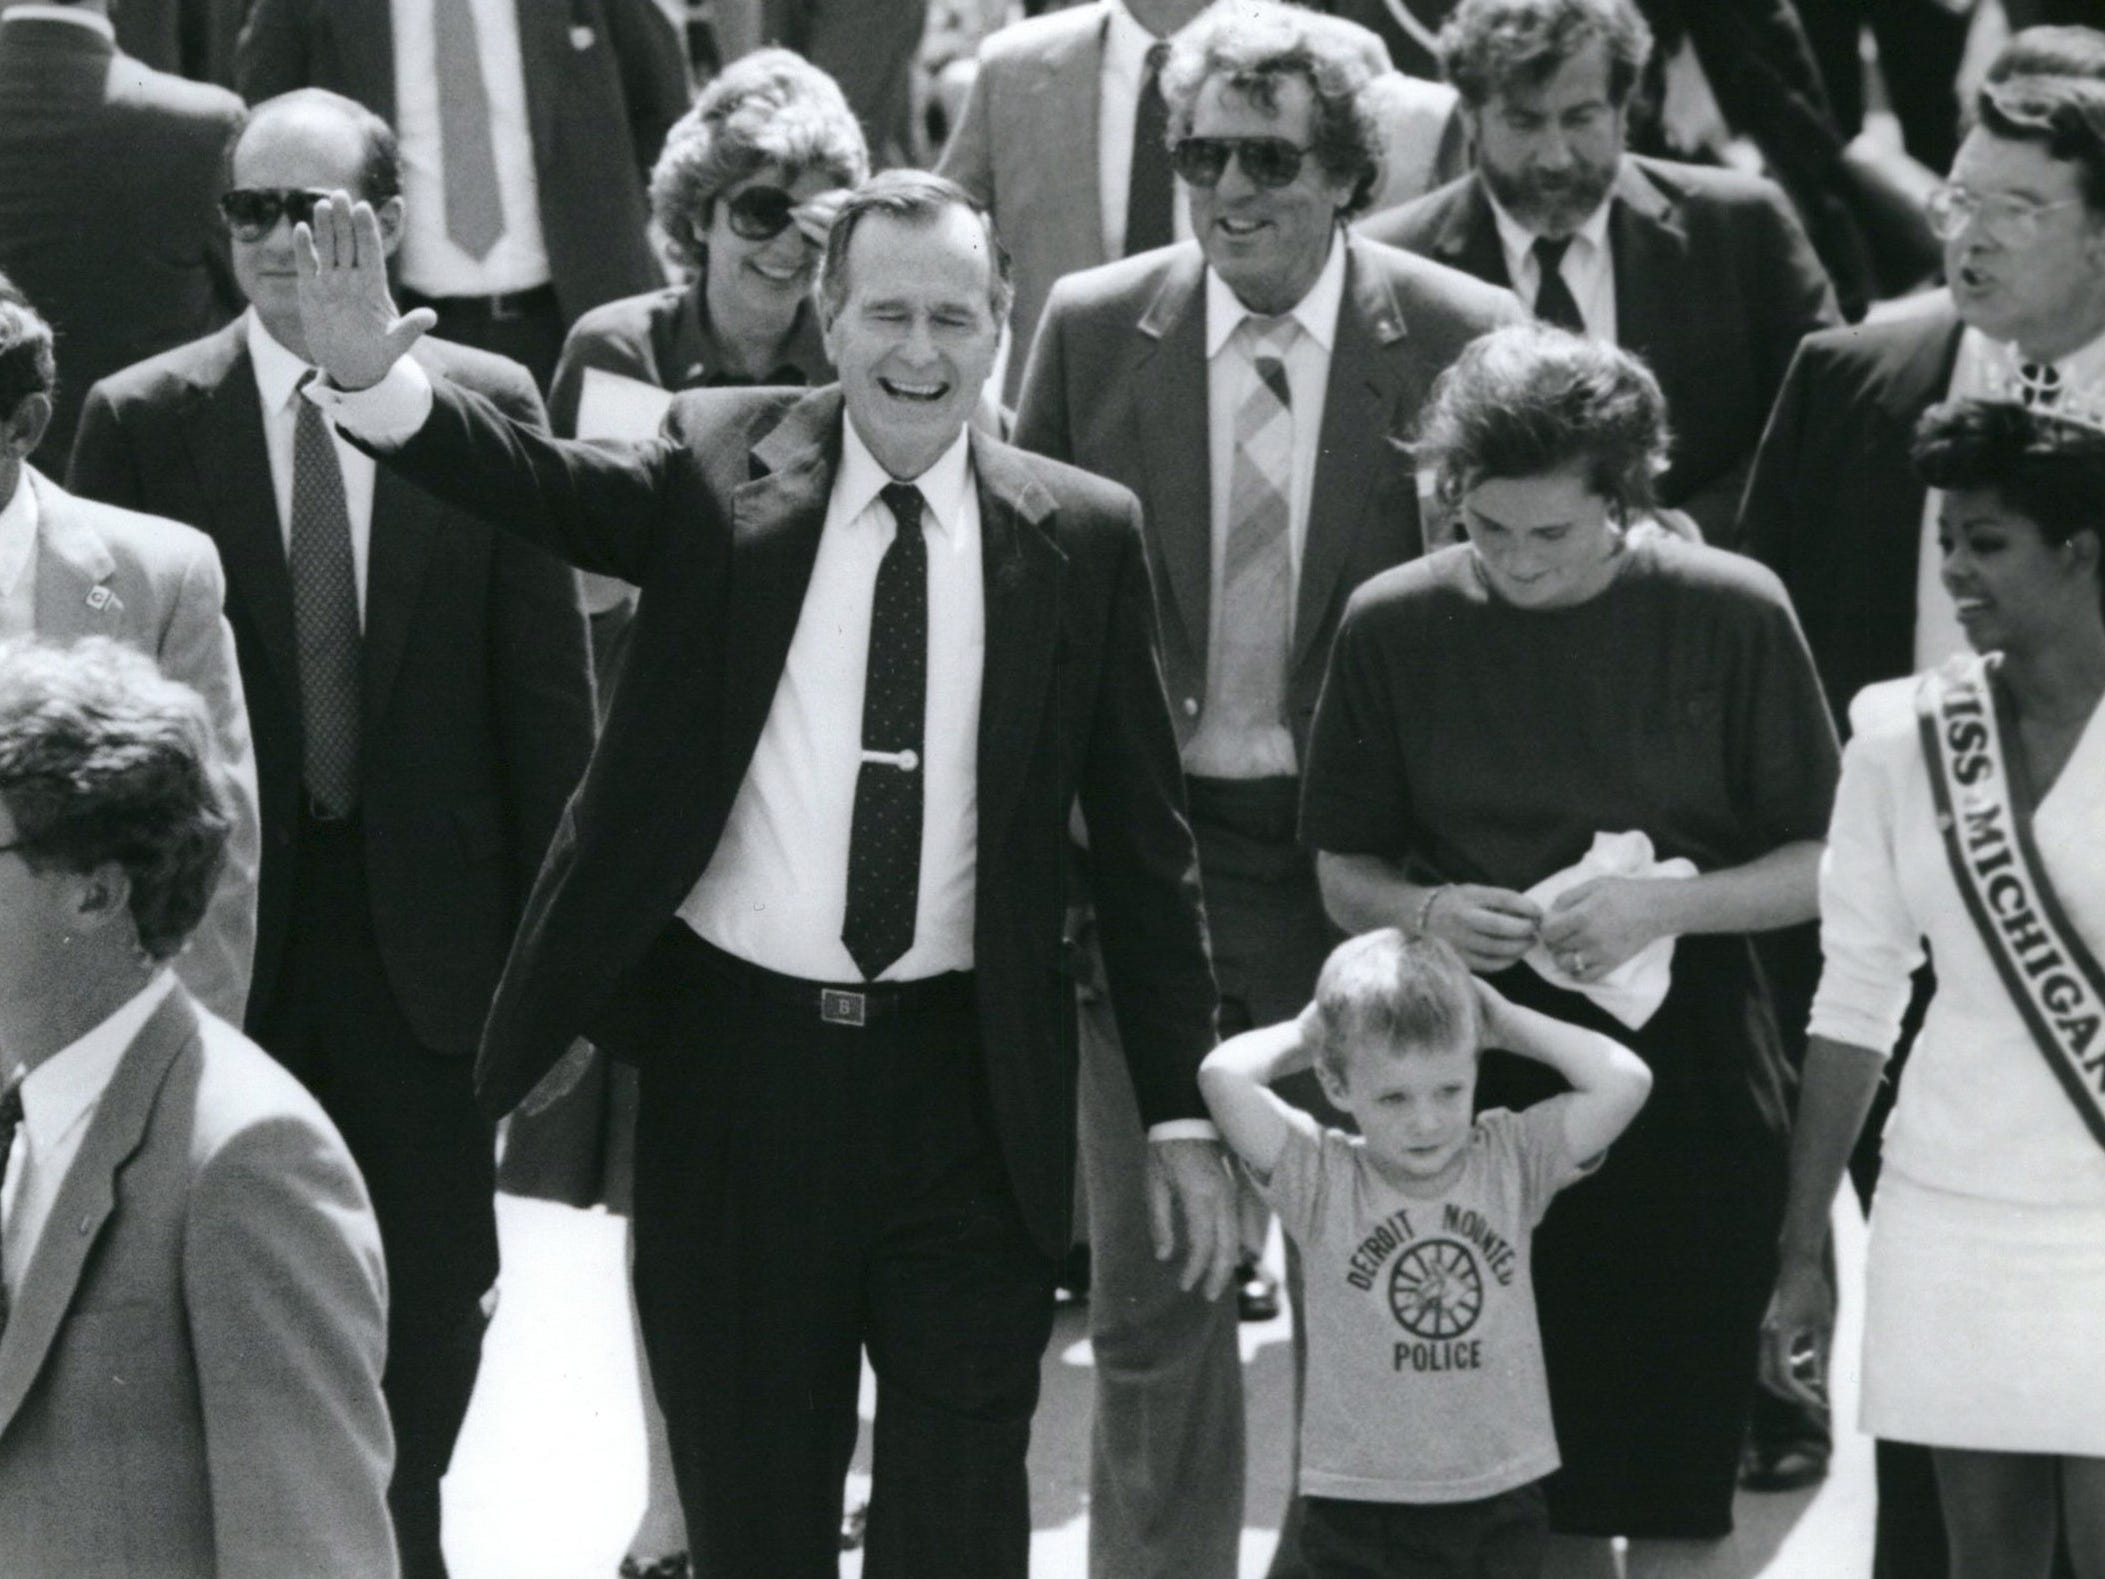 Republican presidential candidate George H.W. Bush walks at the Michigan State Fair with his grandson, Sam Leblonde, 3; his daughter, Dora Leblonde, and Anthonia Dotson, 20, and Miss Michigan State Fair in September 1988.